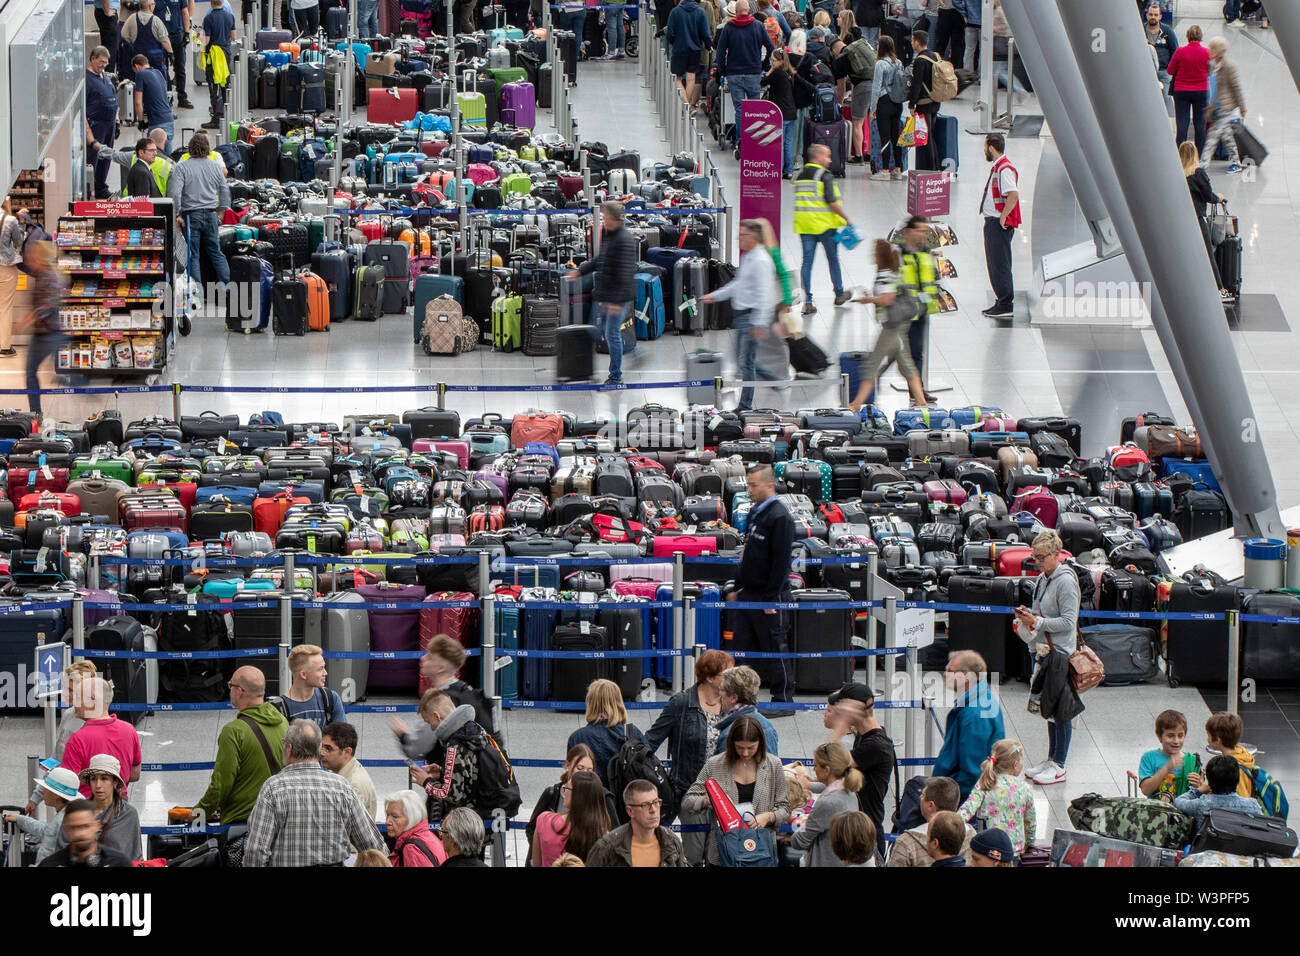 Duesseldorf, Germany. 17th July, 2019. Several hundred pieces of luggage are standing in the departure hall of Düsseldorf Airport. Passengers at Düsseldorf Airport had to adjust to problems with baggage handling due to a technical malfunction Credit: Marcel Kusch/dpa/Alamy Live News - Stock Image